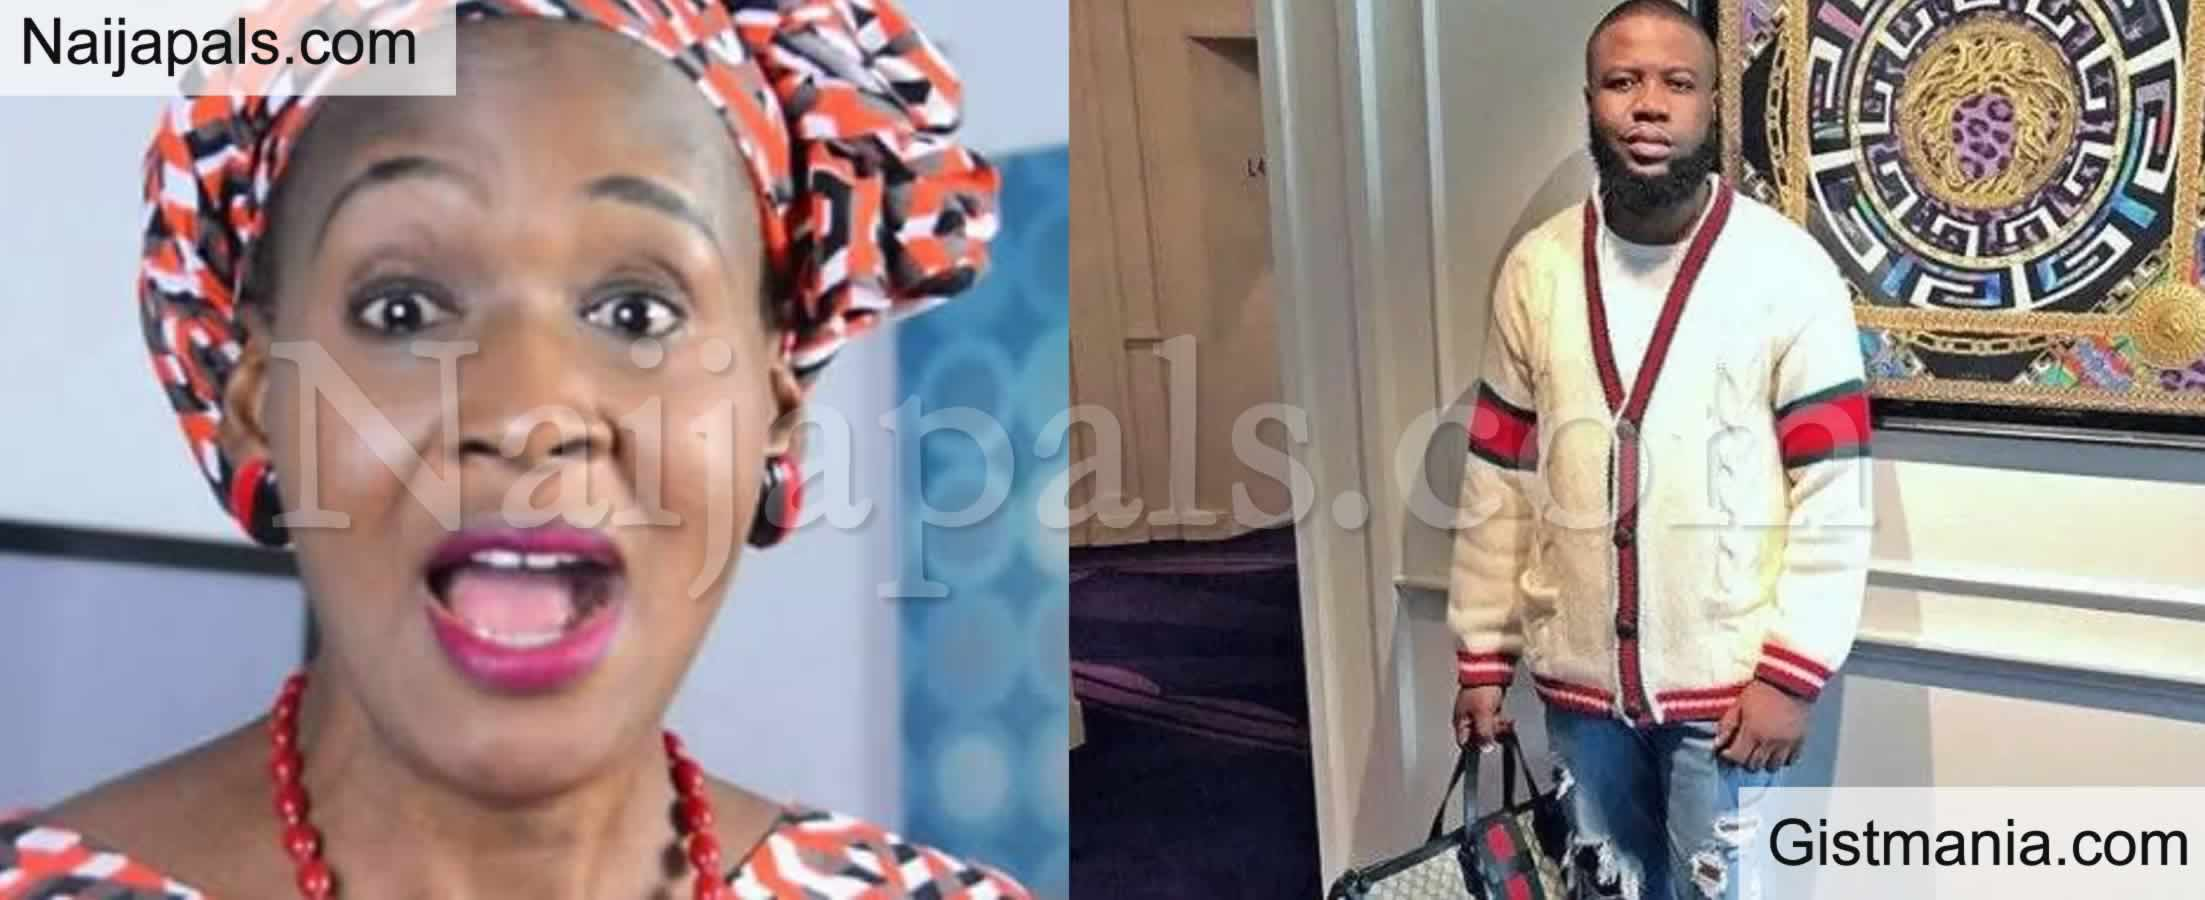 "<img alt='.' class='lazyload' data-src='https://img.gistmania.com/emot/comment.gif' /> <b>""More Nigerians In Dubai To Be Arrested As Hushpuppi Names His Accomplices""</b> - Kemi Olunloyo Reveals"